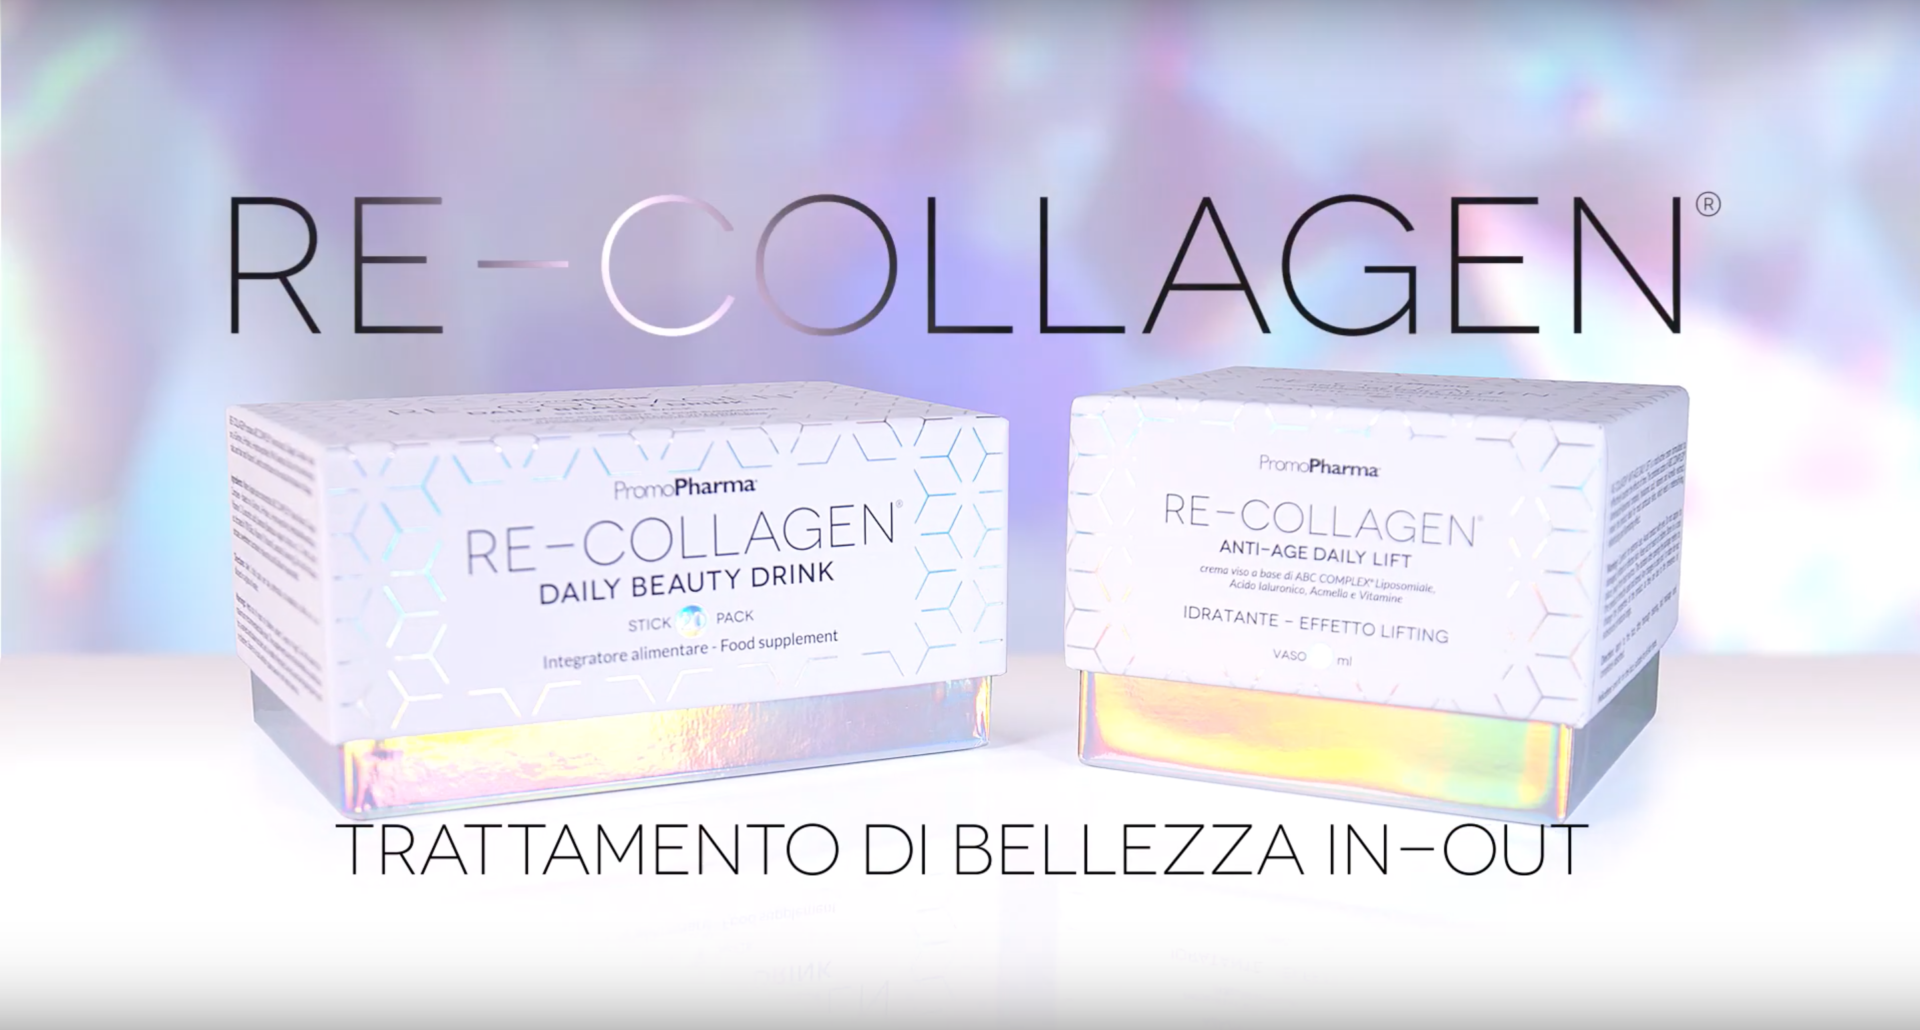 Promopharma Re-Collagen